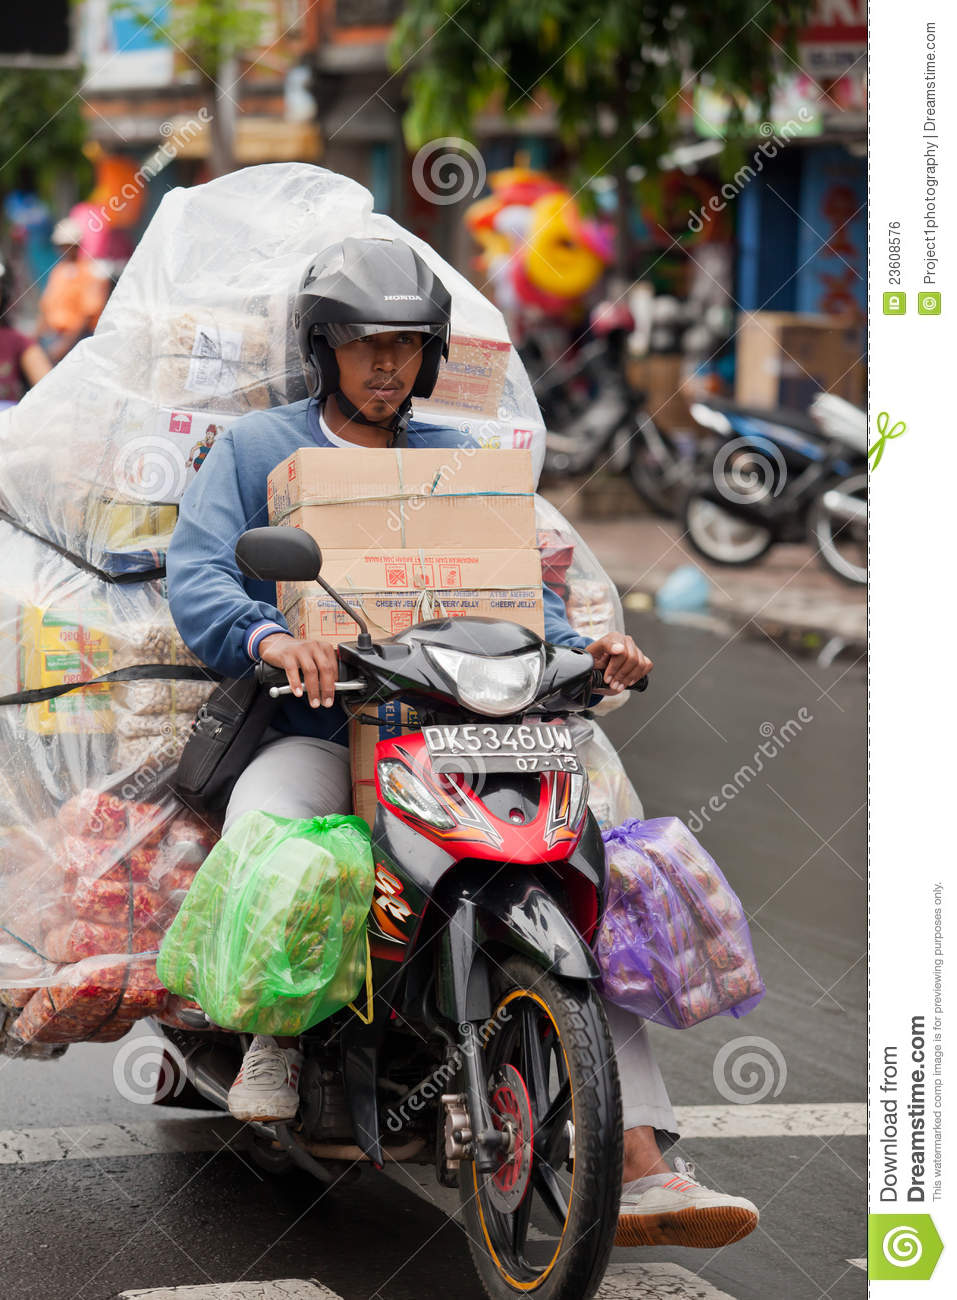 Overloaded Motorcycle Editorial Photo Image 23608576